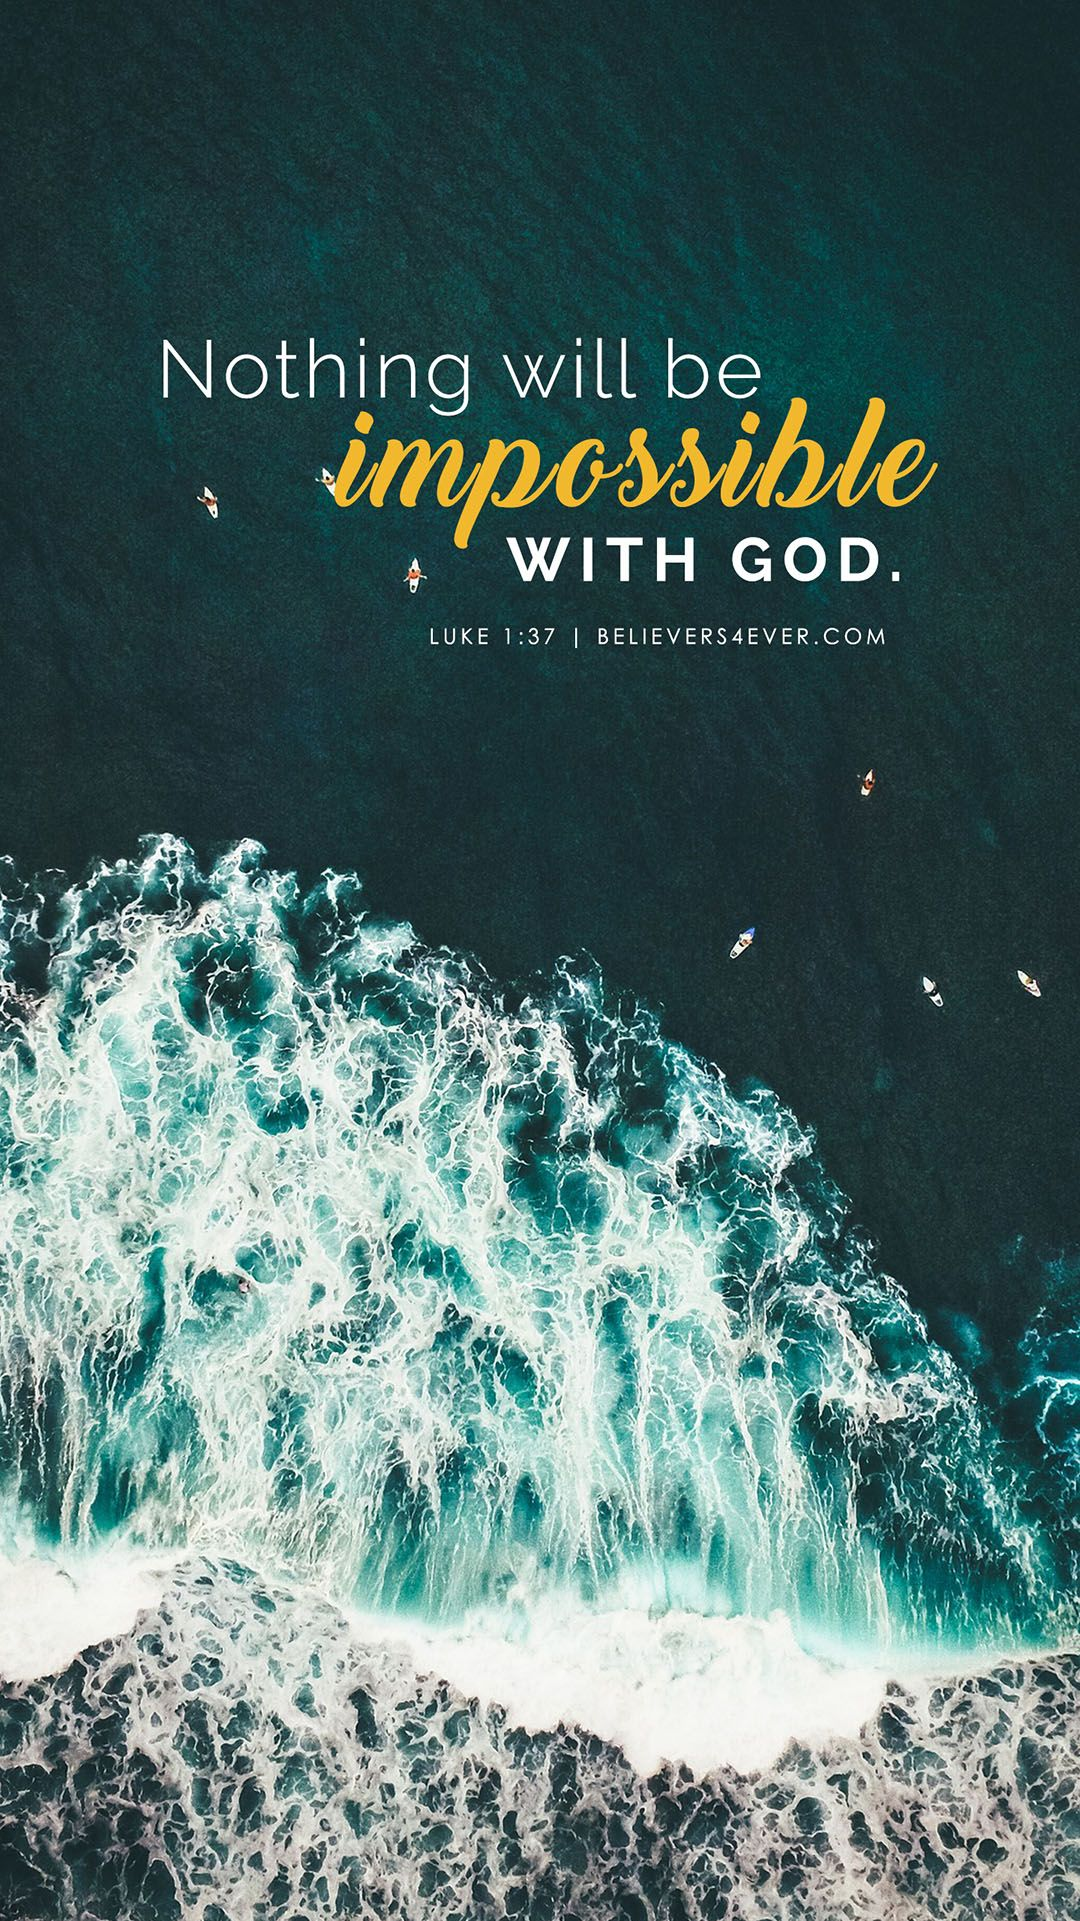 Nothing will be impossible with God Bible verse